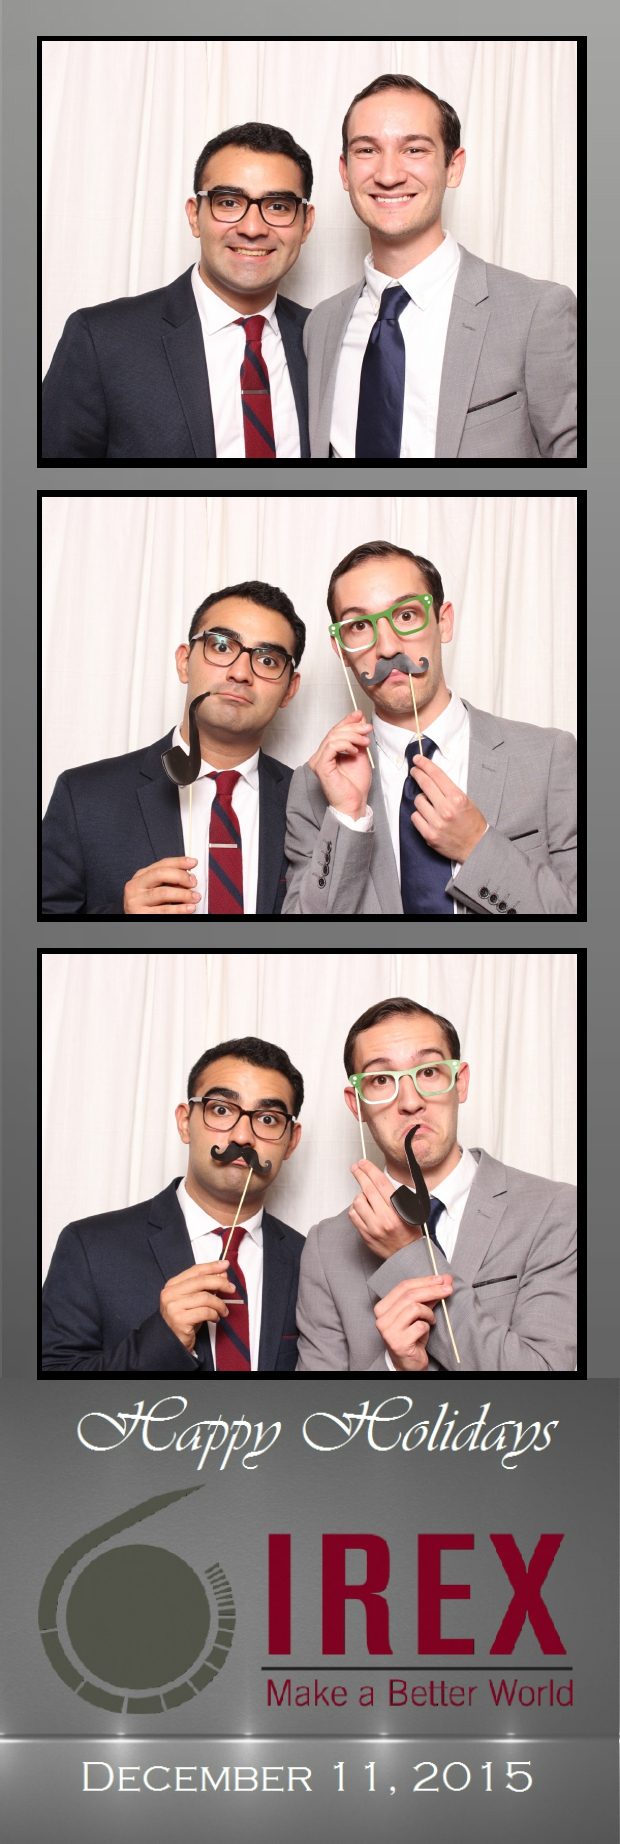 Guest House Events Photo Booth Strips IREX (56).jpg